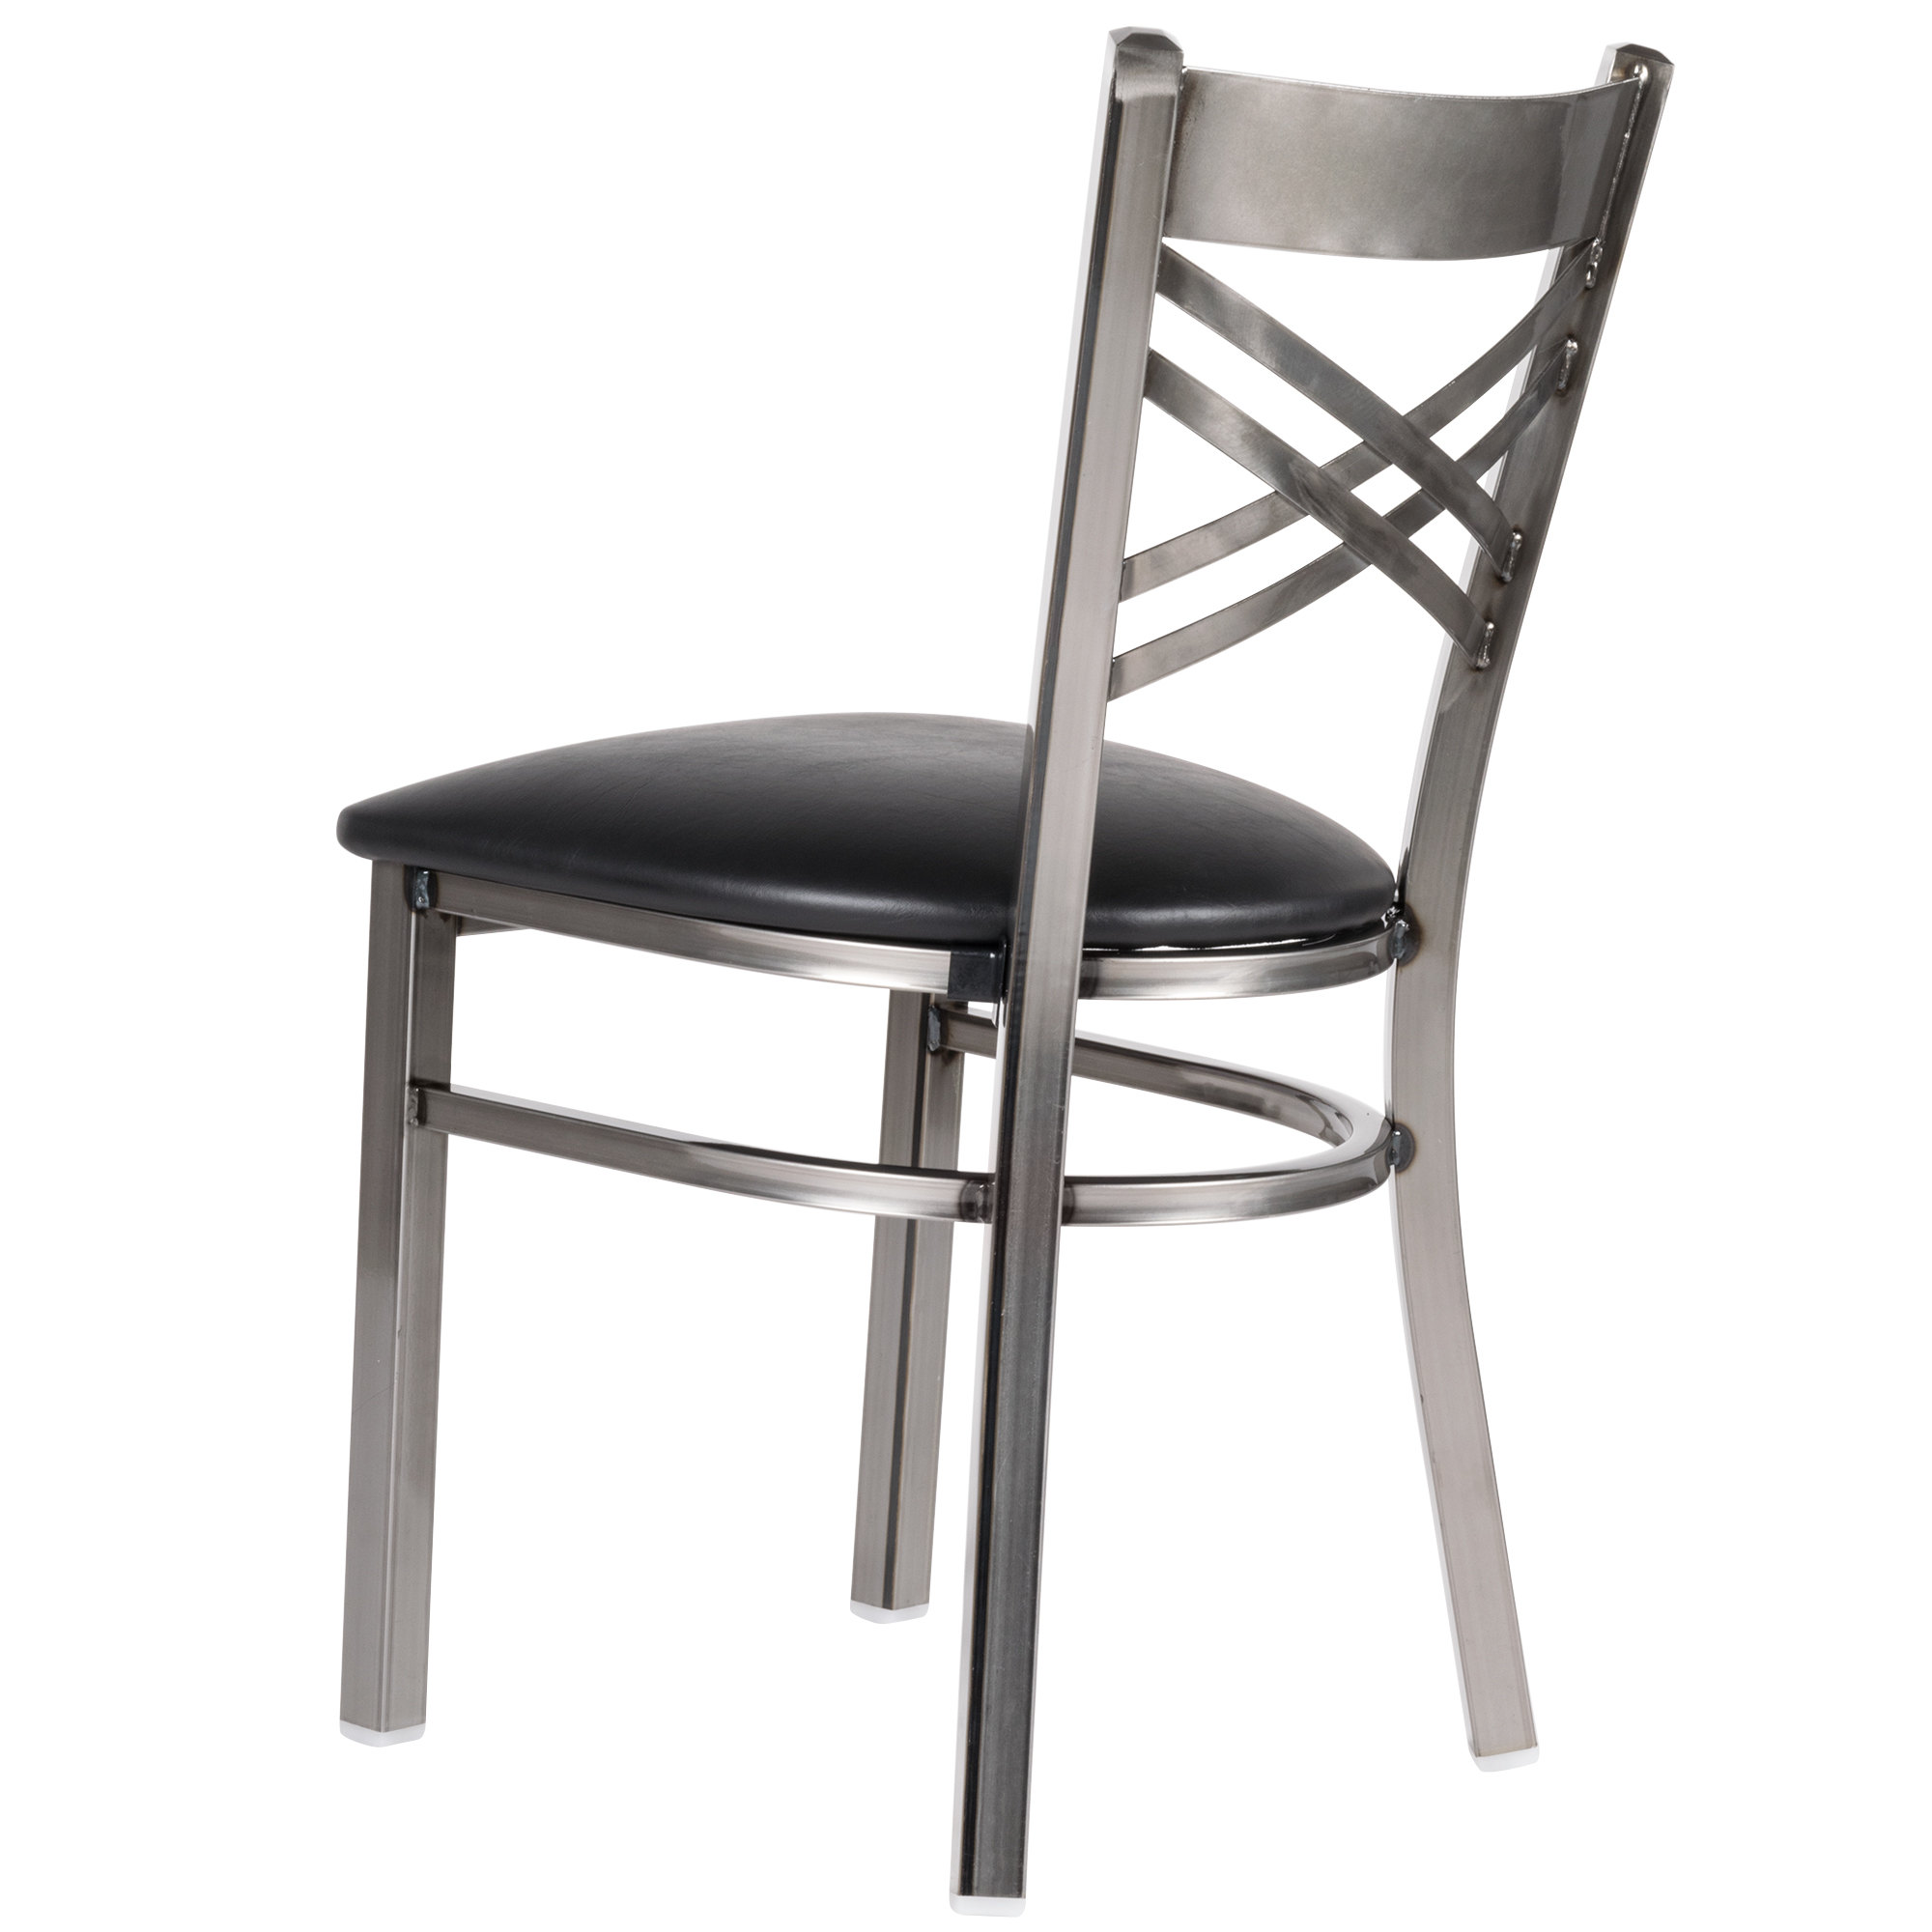 #122 - Clear Coat Steel Cross Back Restaurant Chair with Black Vinyl Padded Seat